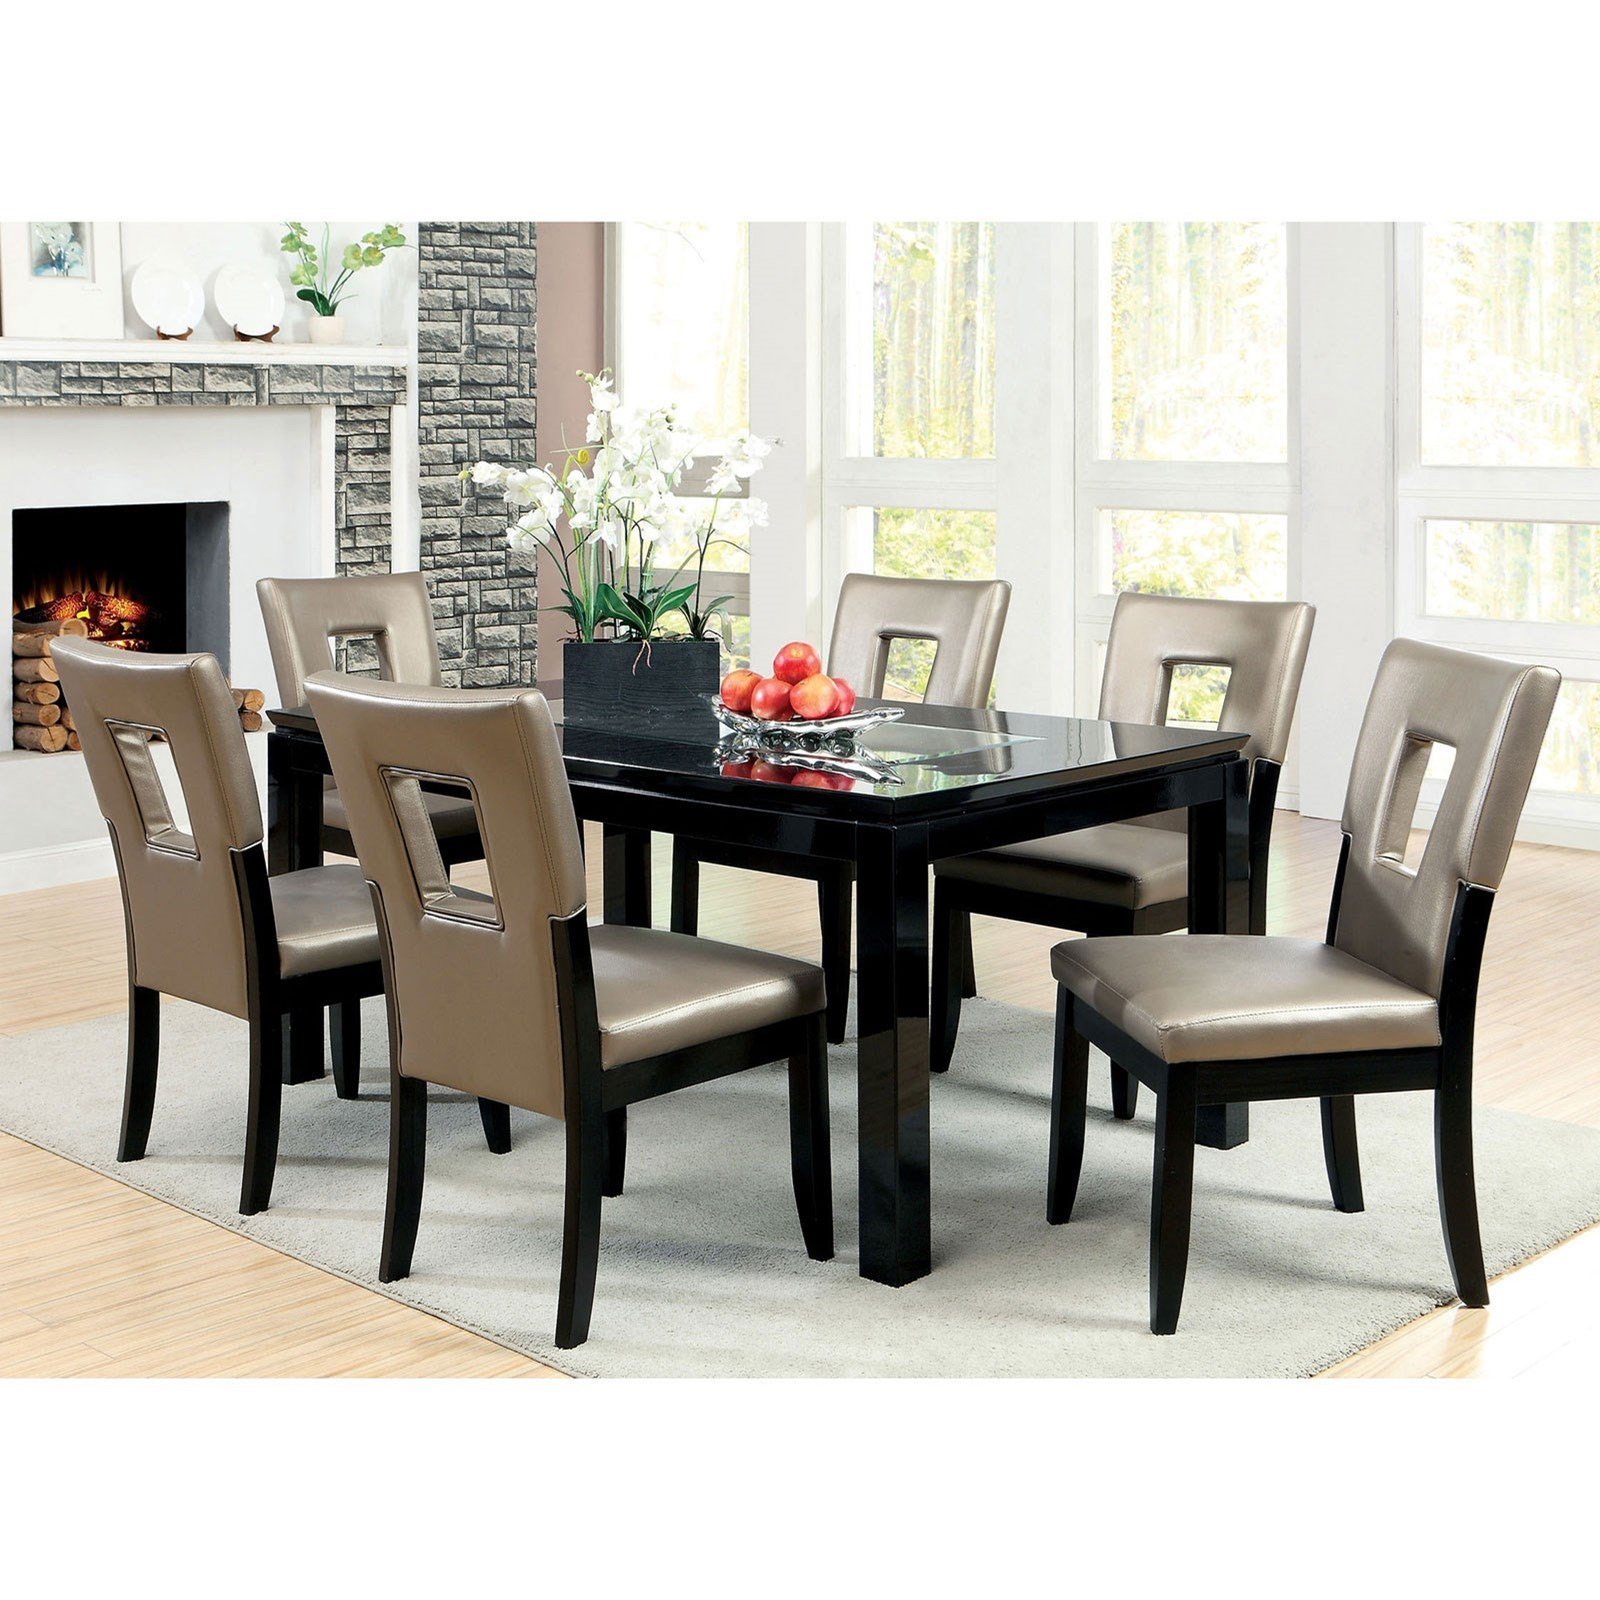 Marvelous Evant I Dining Table Set With Six Chairs Ibusinesslaw Wood Chair Design Ideas Ibusinesslaworg